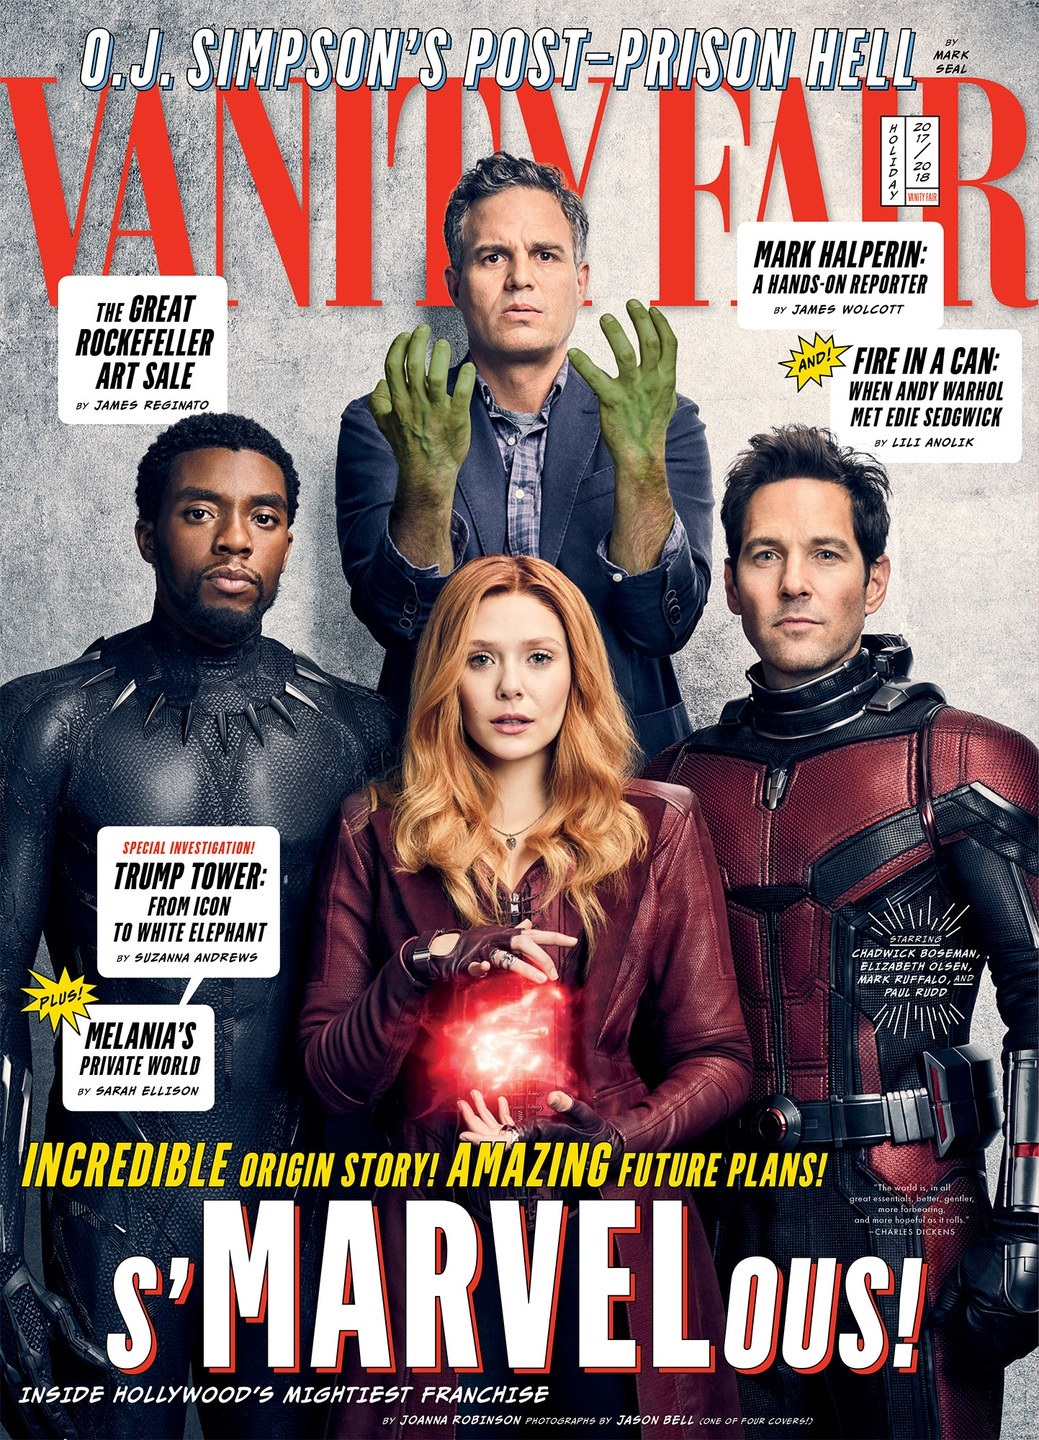 Cover featuring Hulk, Black Panther, Scarlet Witch and Ant-Man